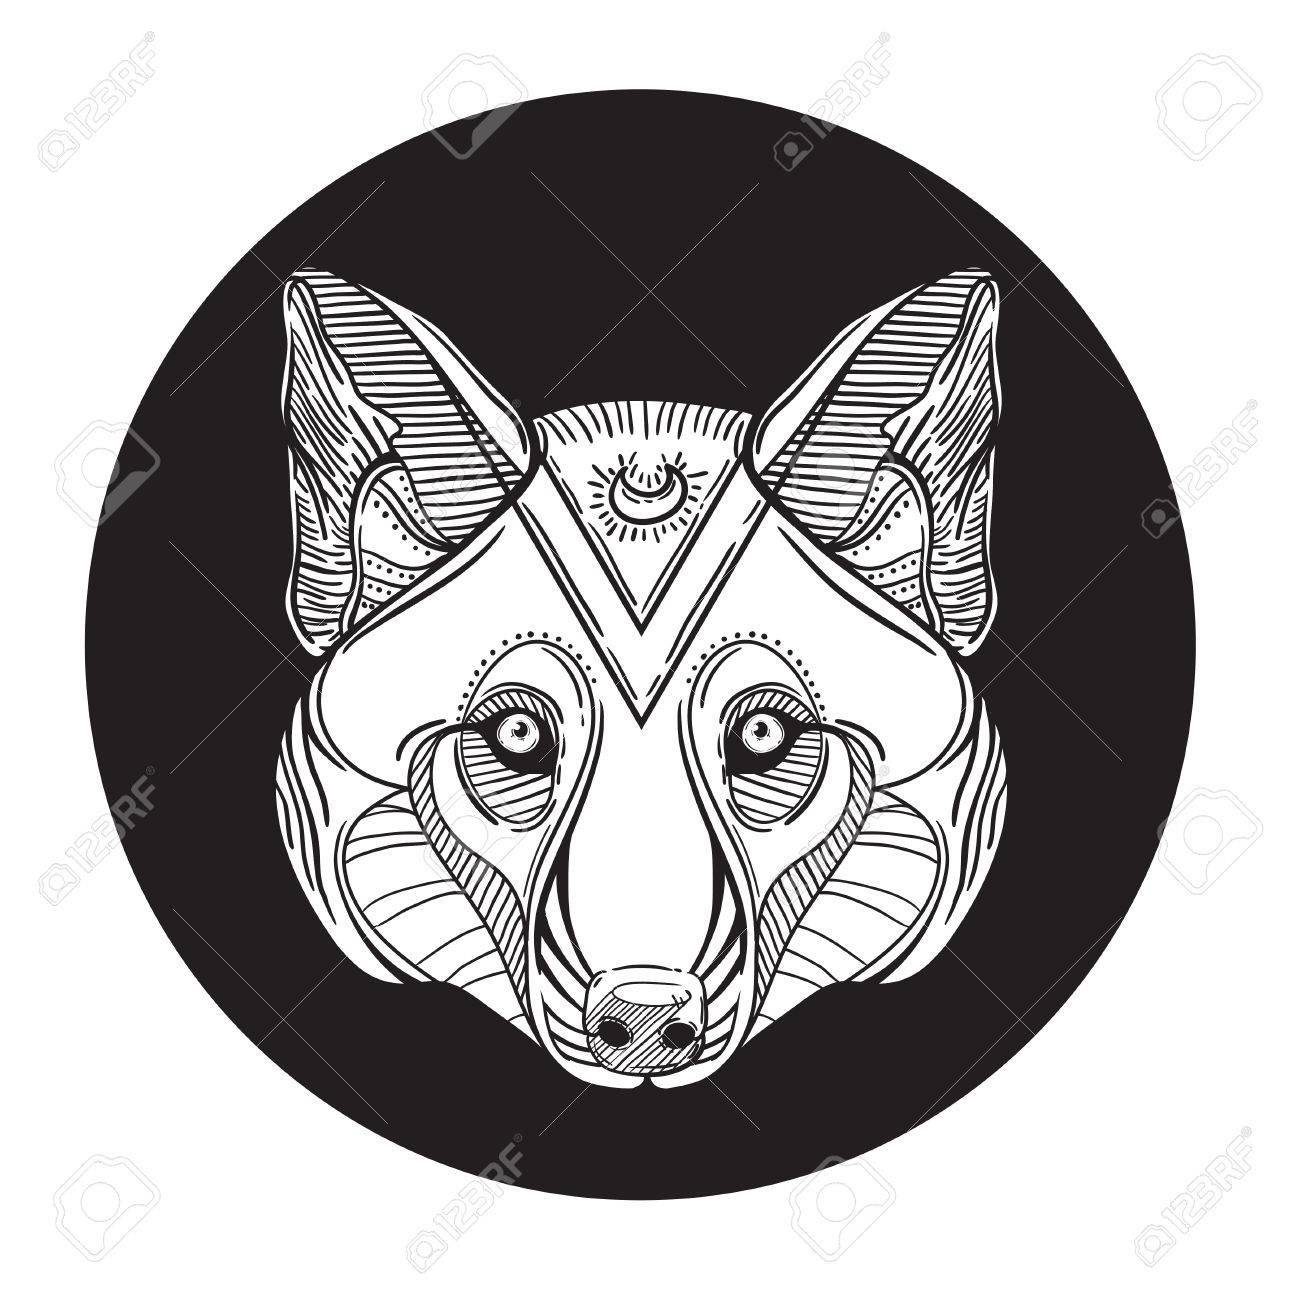 Coloriage Adulte Loup.Tete De Loup Animal Imprimer Pour Coloriage Anti Stress Adulte Main